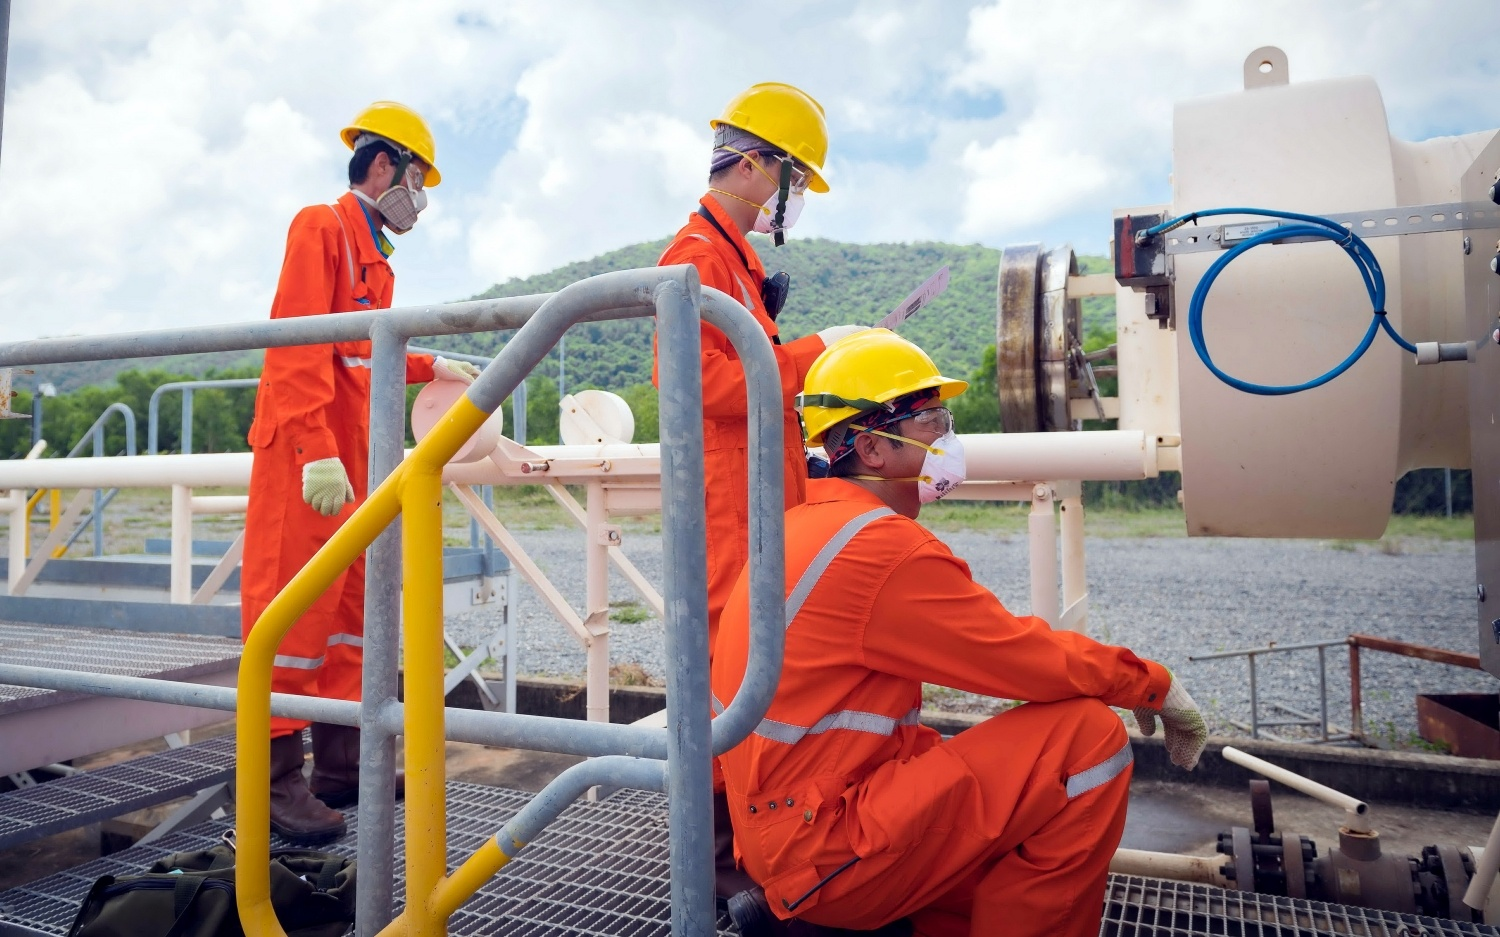 PetroVietnam outperforms 8-month period with continued focus on digital transformation